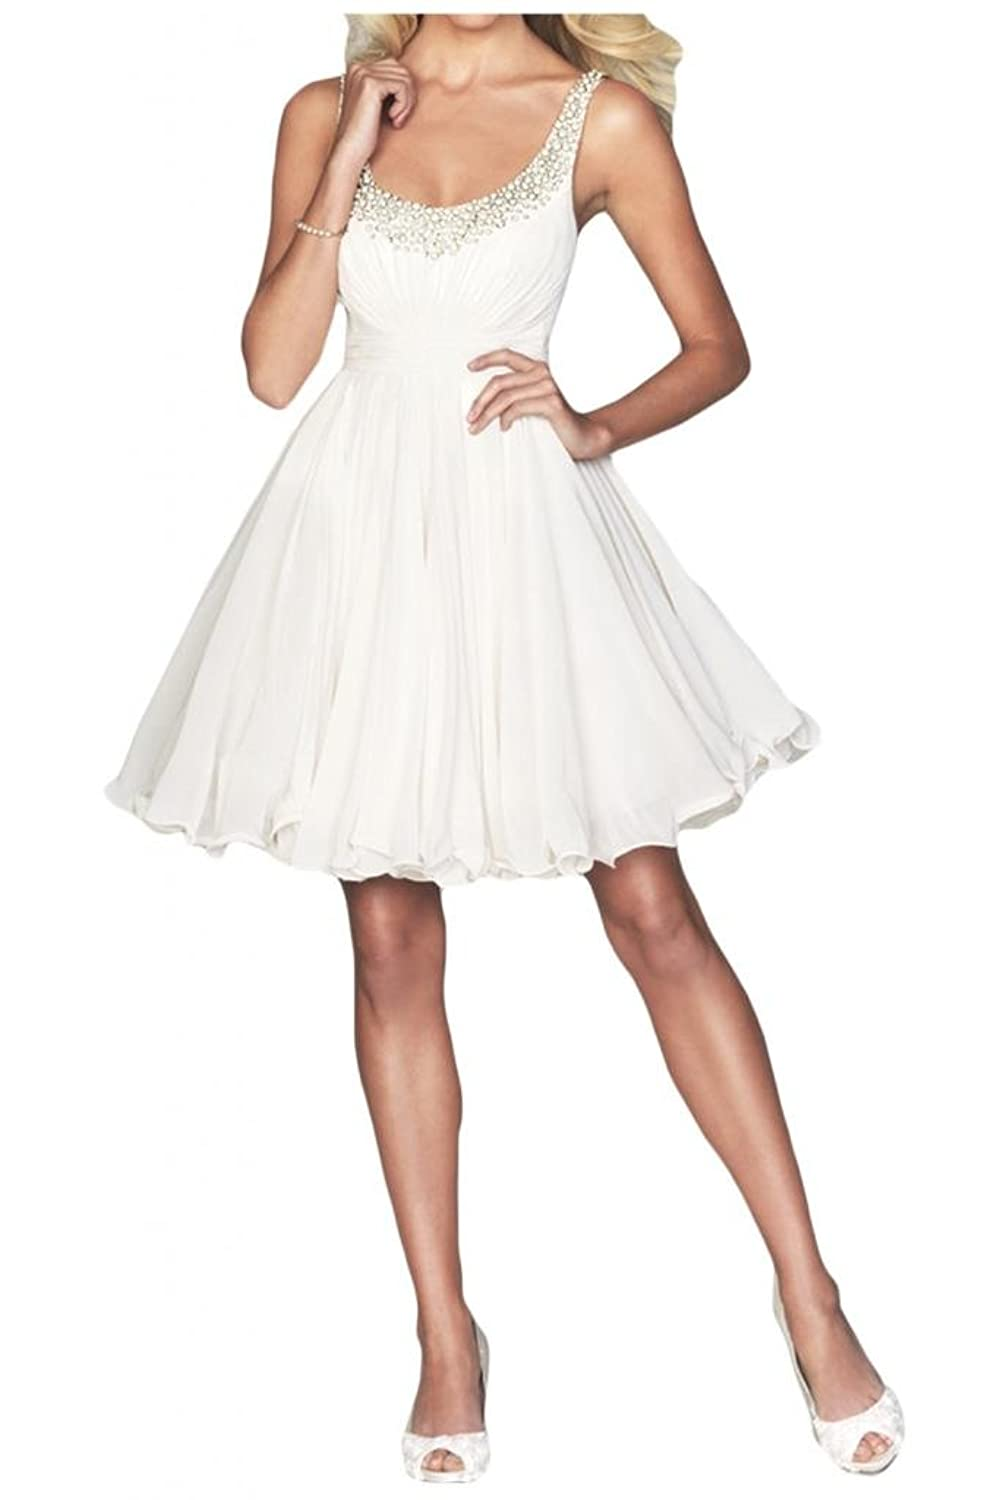 Gorgeous Bride Chiffon Short Bridesmaid Dresses Spaghetti Straps Rhinestones